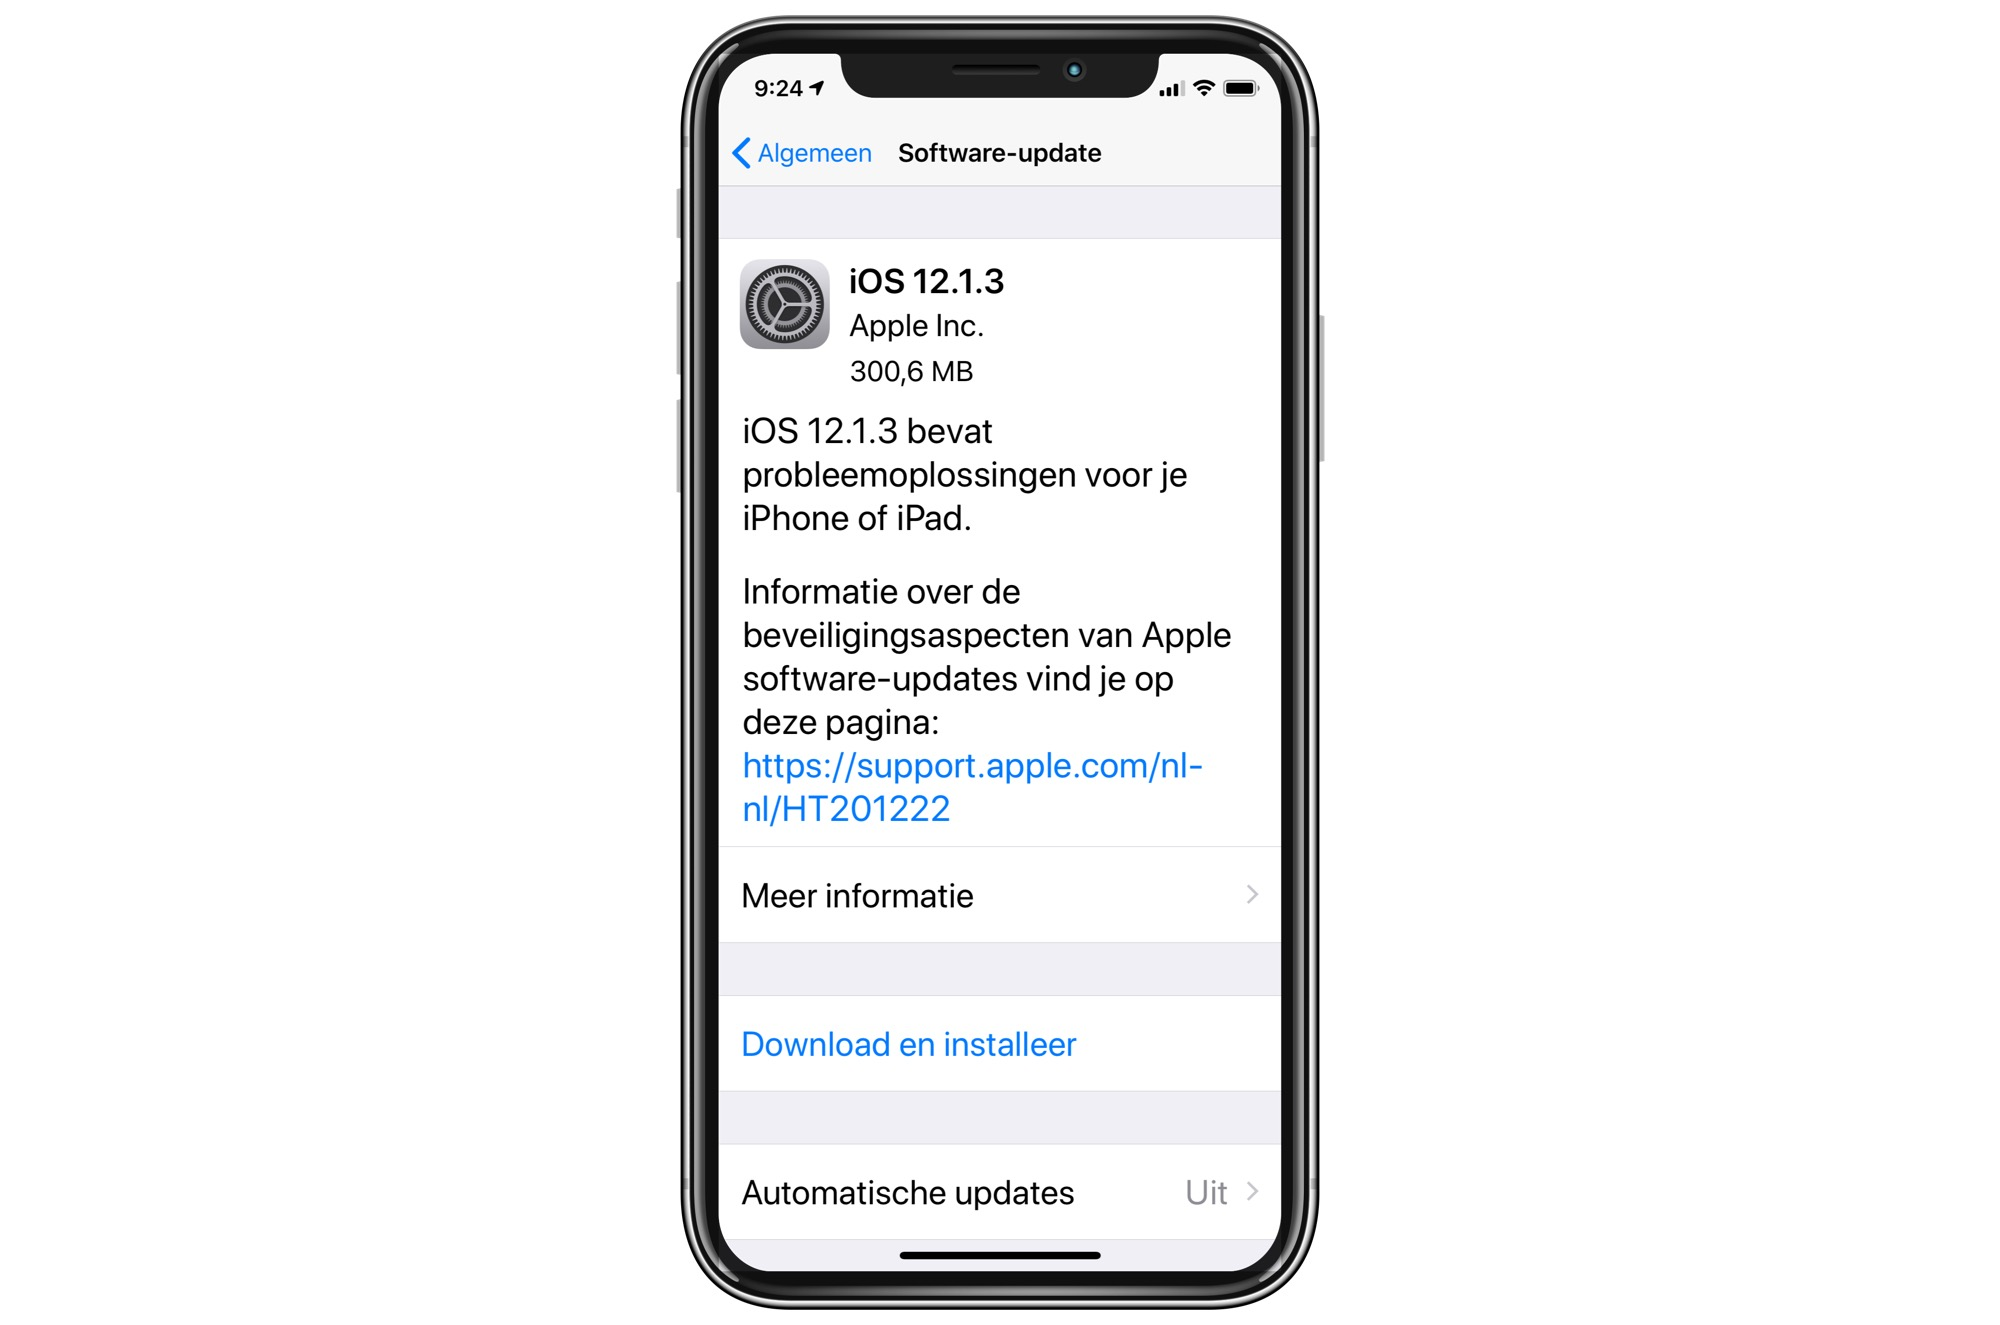 https://www.macfreak.nl/modules/news/images/zArt.iOS12.1.3releaseNotes.jpeg